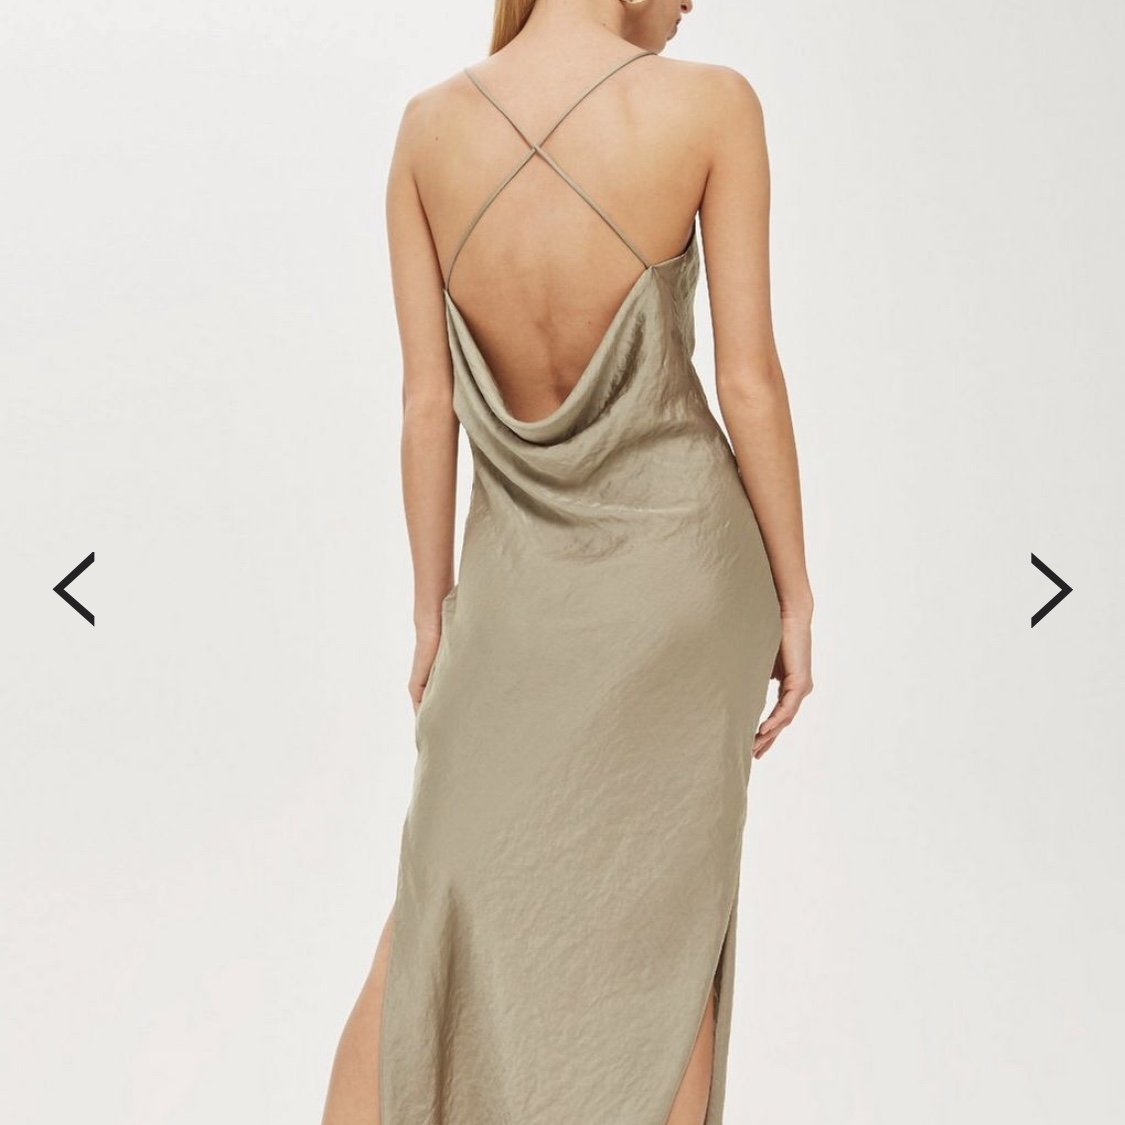 f16abab16b642 Topshop olive satin slip dress Sold out in most sizes Size - Depop